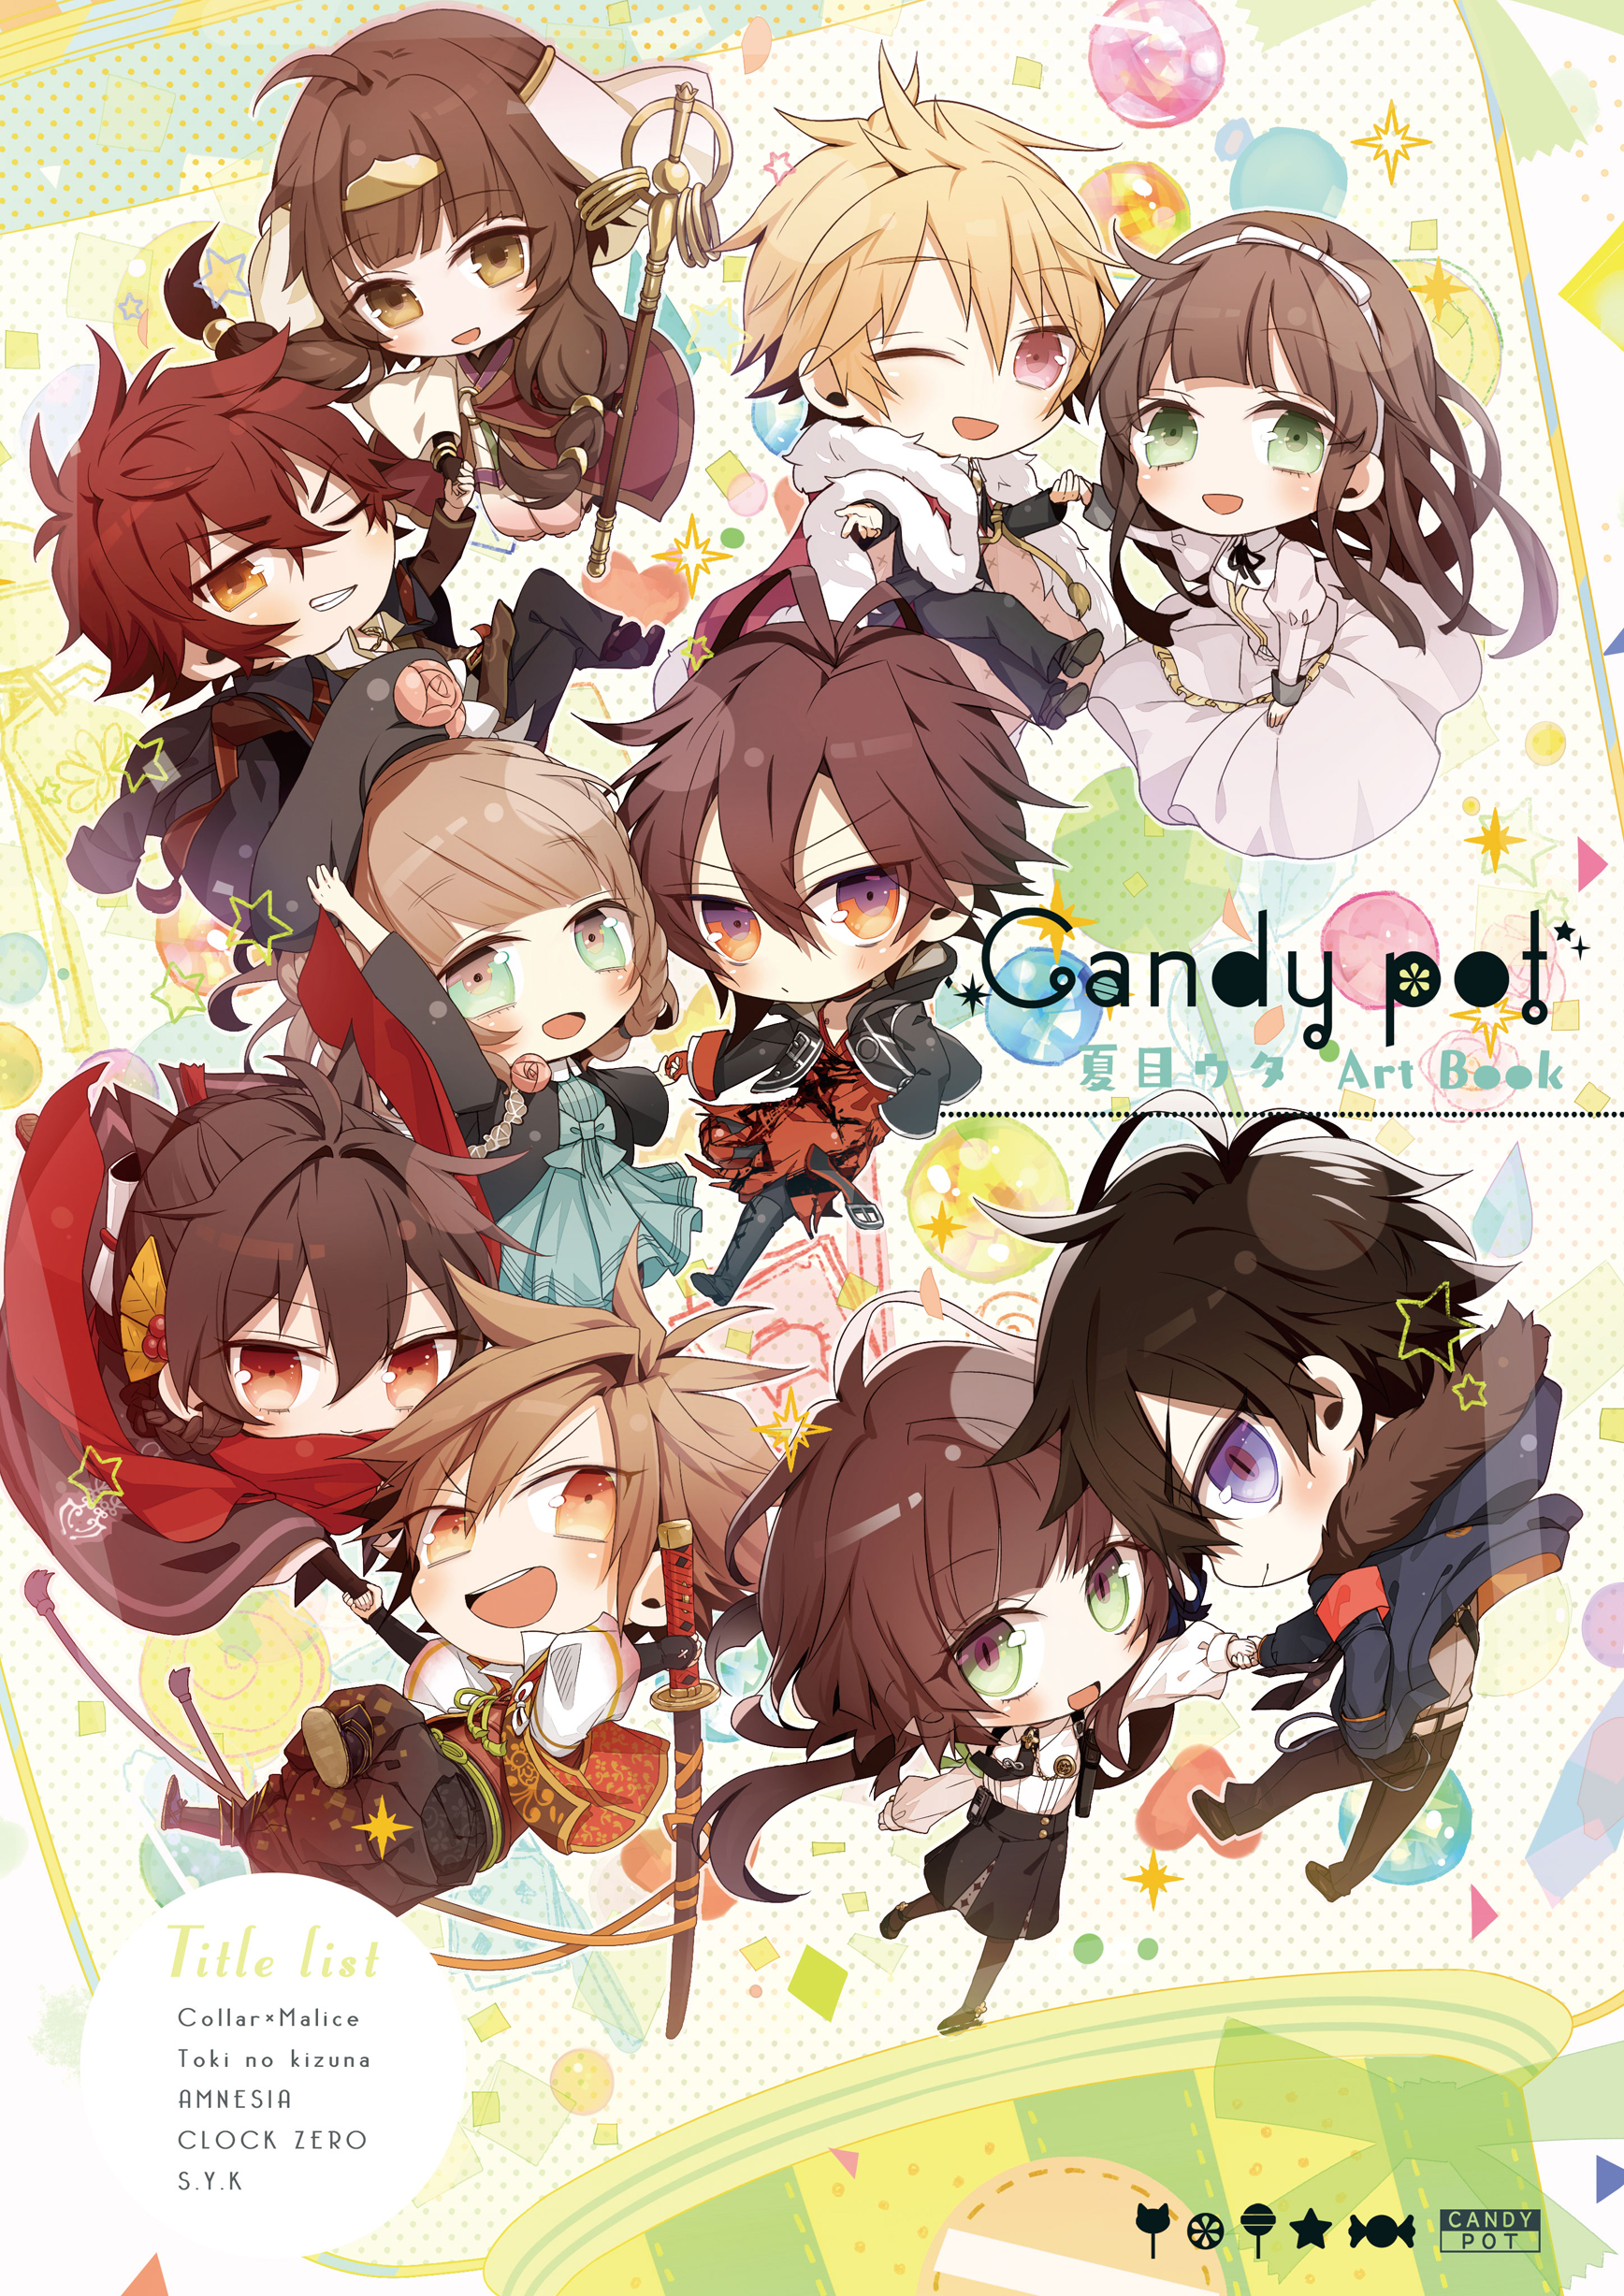 01_candypot_syoei_s.jpg